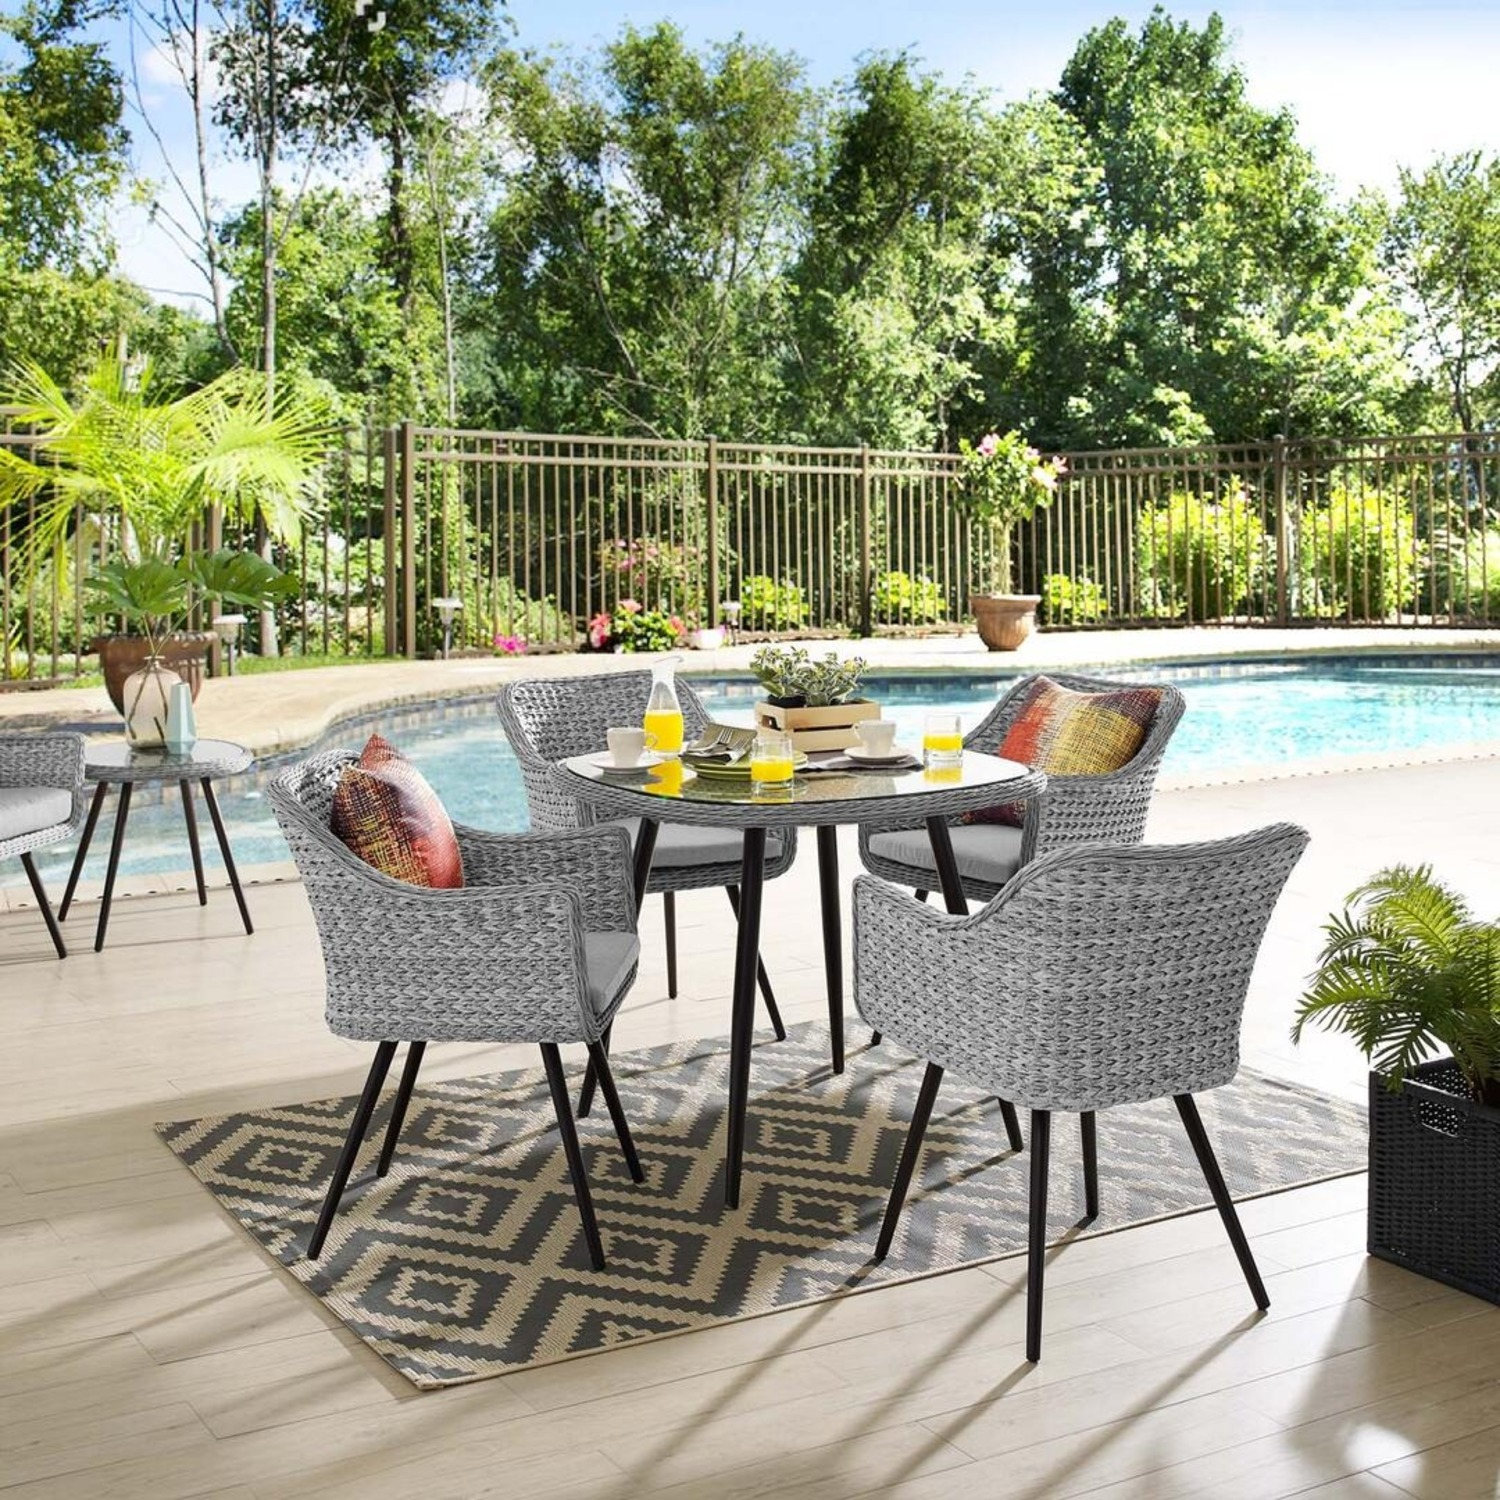 Modern 5-Piece Dining Set In Gray-On-Gray Tone - image-7